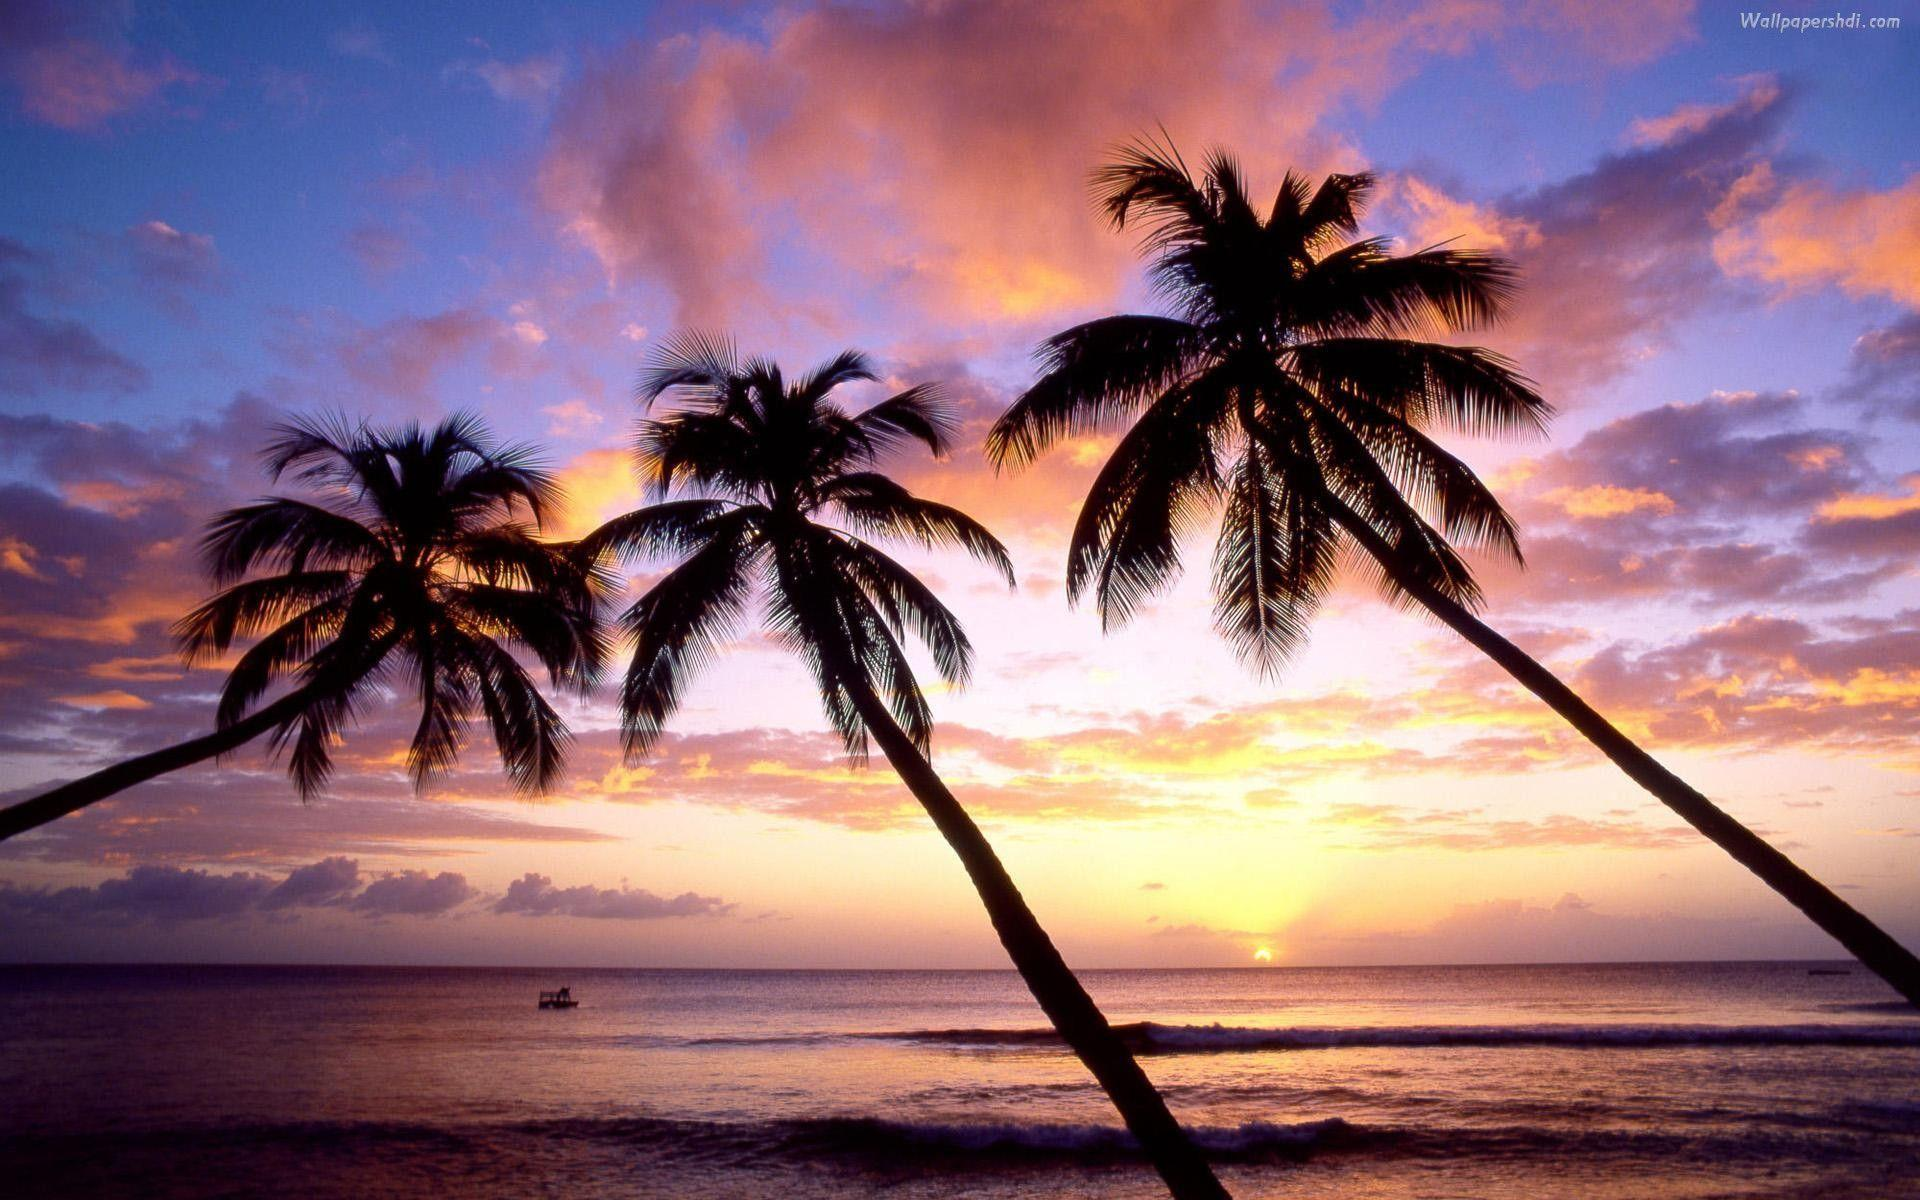 Palm Trees On The Beach 17337 Hd Wallpapers In N Tropical